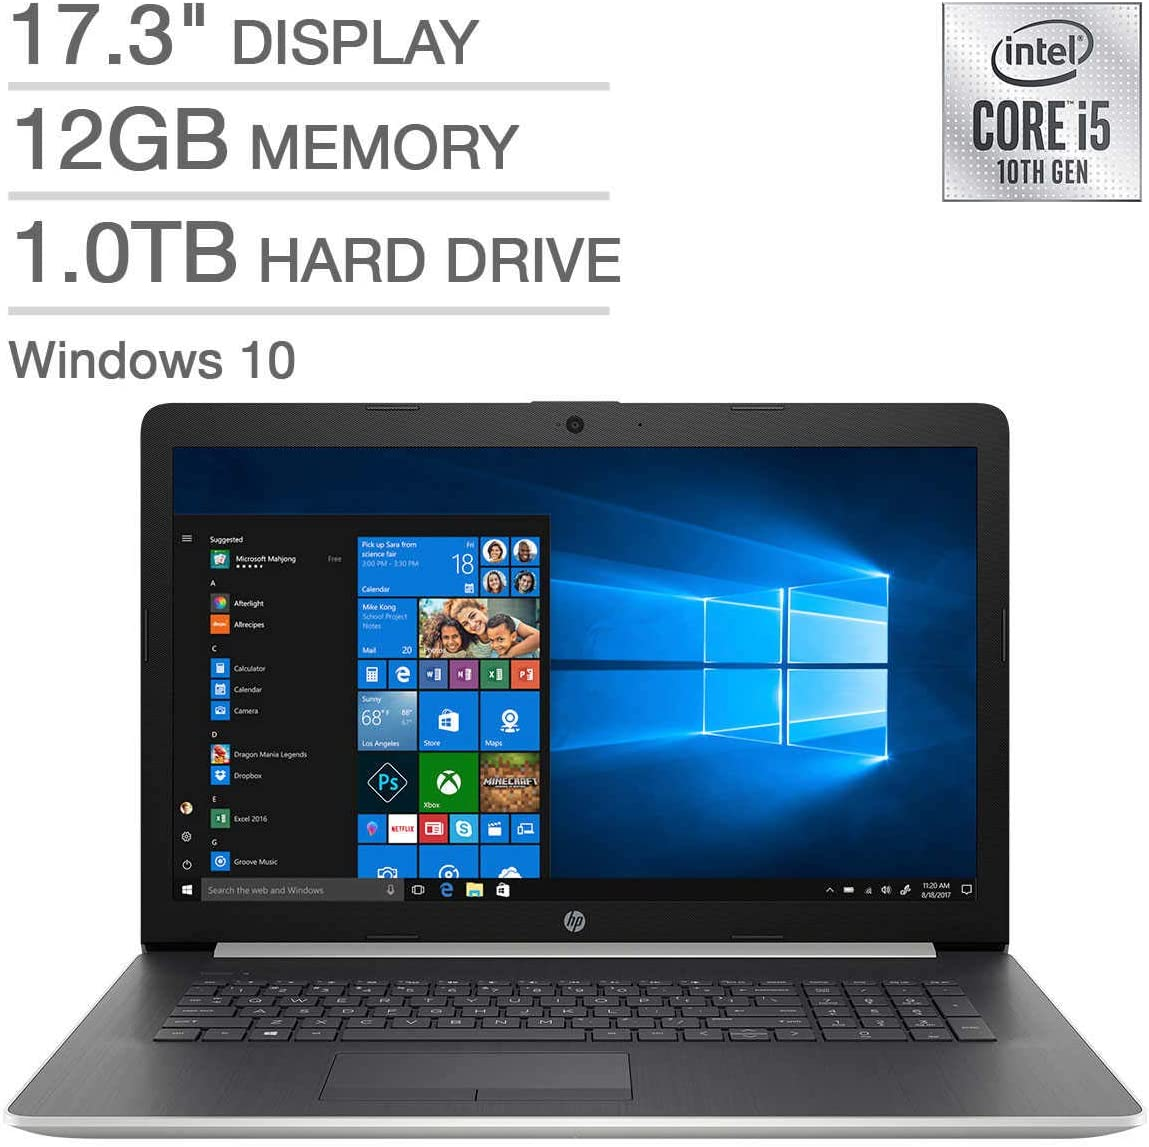 HP 17.3 Inch Laptop Computer 10th Gen Intel Core i5-1035G1 up to 3.6GHz, 12GB RAM, 1TB HDD, Intel Graphics, DVD, WiFi, Bluetooth, Windows 10 (Renewed)